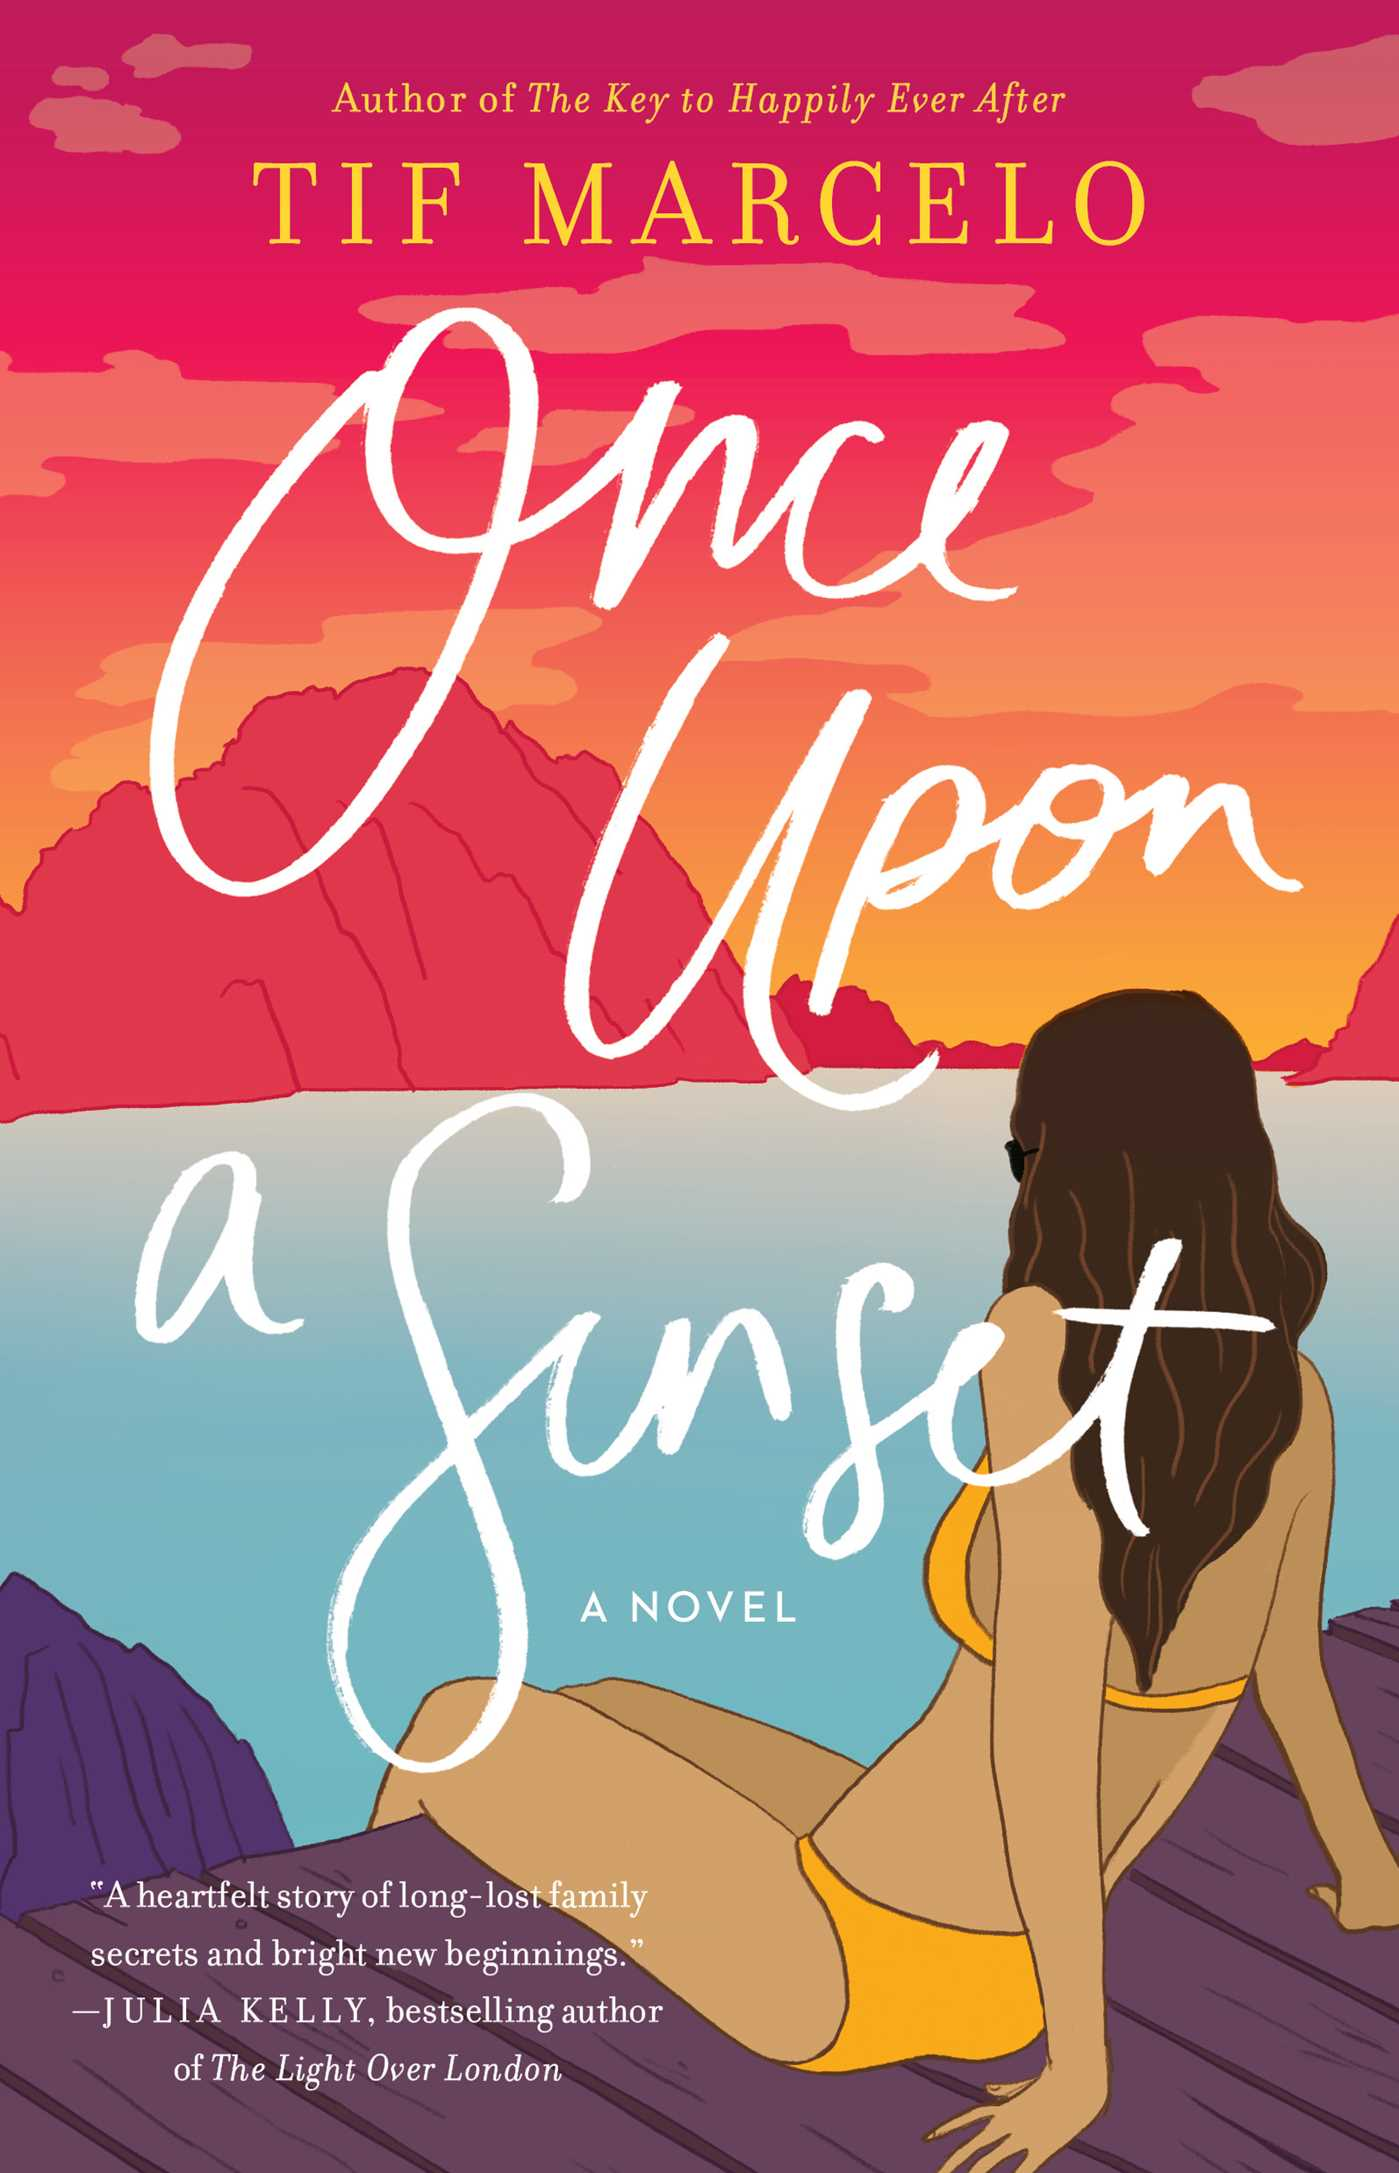 Once Upon a Sunset by Tif Marcelo (23 Books by Filipino Diaspora Authors For Your Shelf)